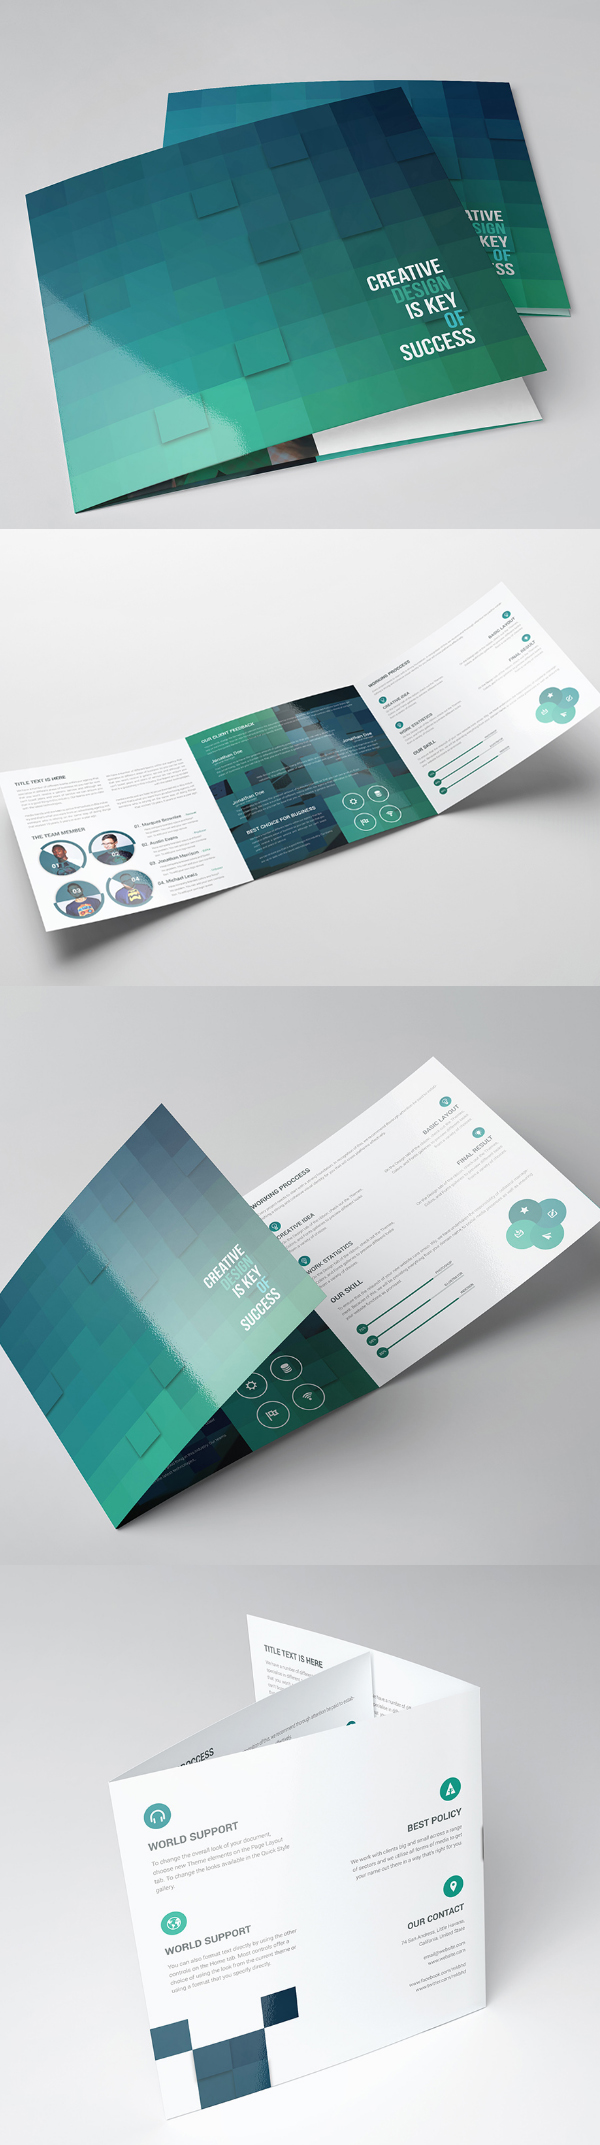 New catalog brochure design templates design graphic for Graphic design brochure templates